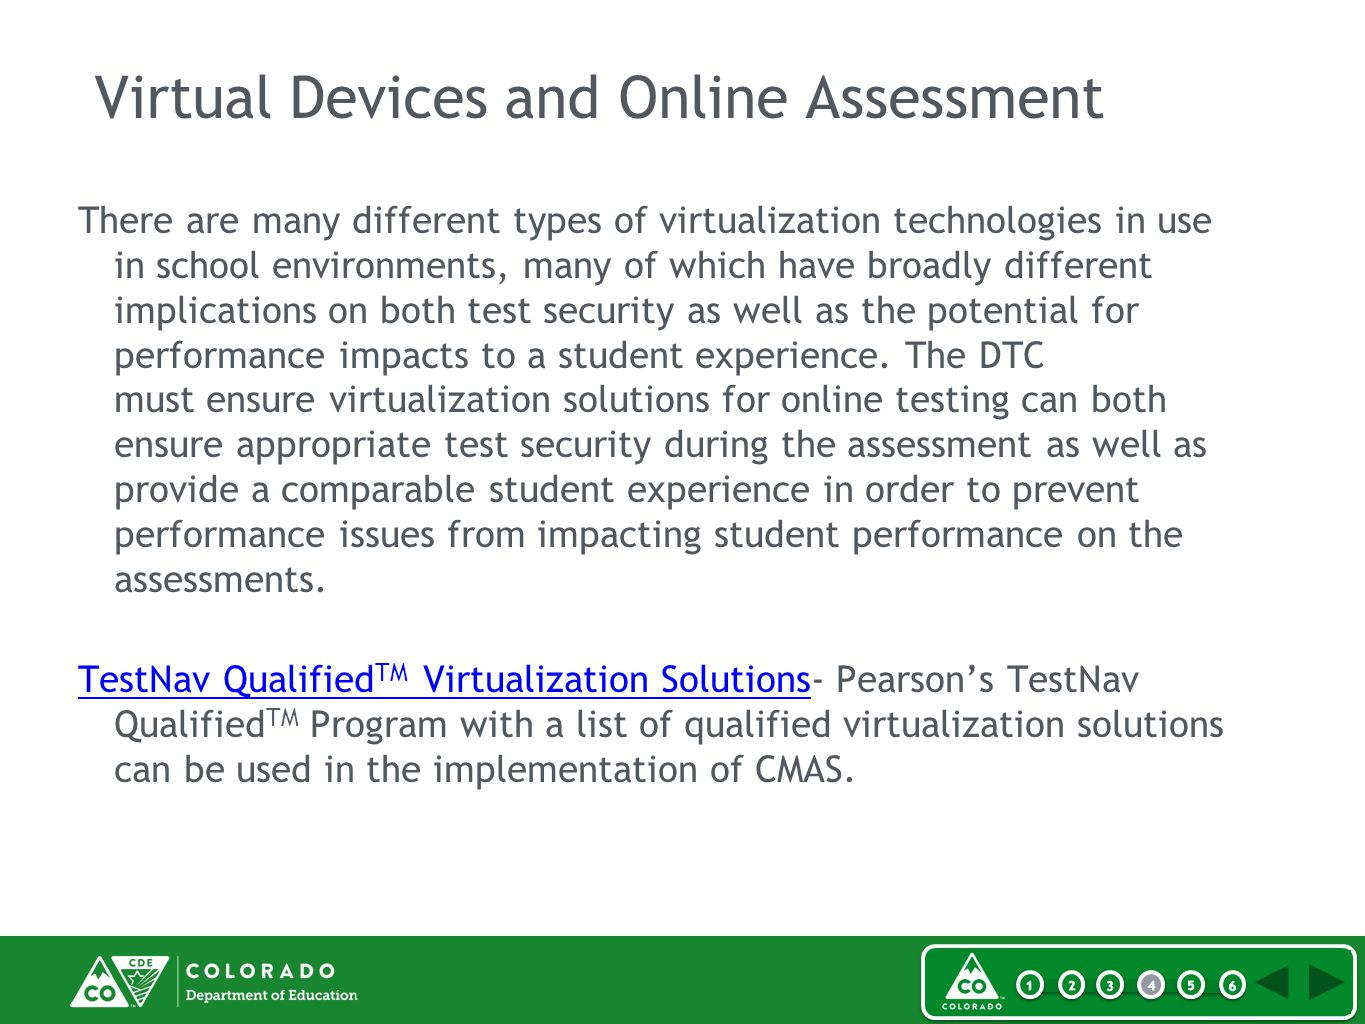 Virtual Devices and Online Assessment There are many different types of virtualization technologies in use in school environments, many of which have broadly different implications on both test security as well as the potential for performance impacts to a student experience.